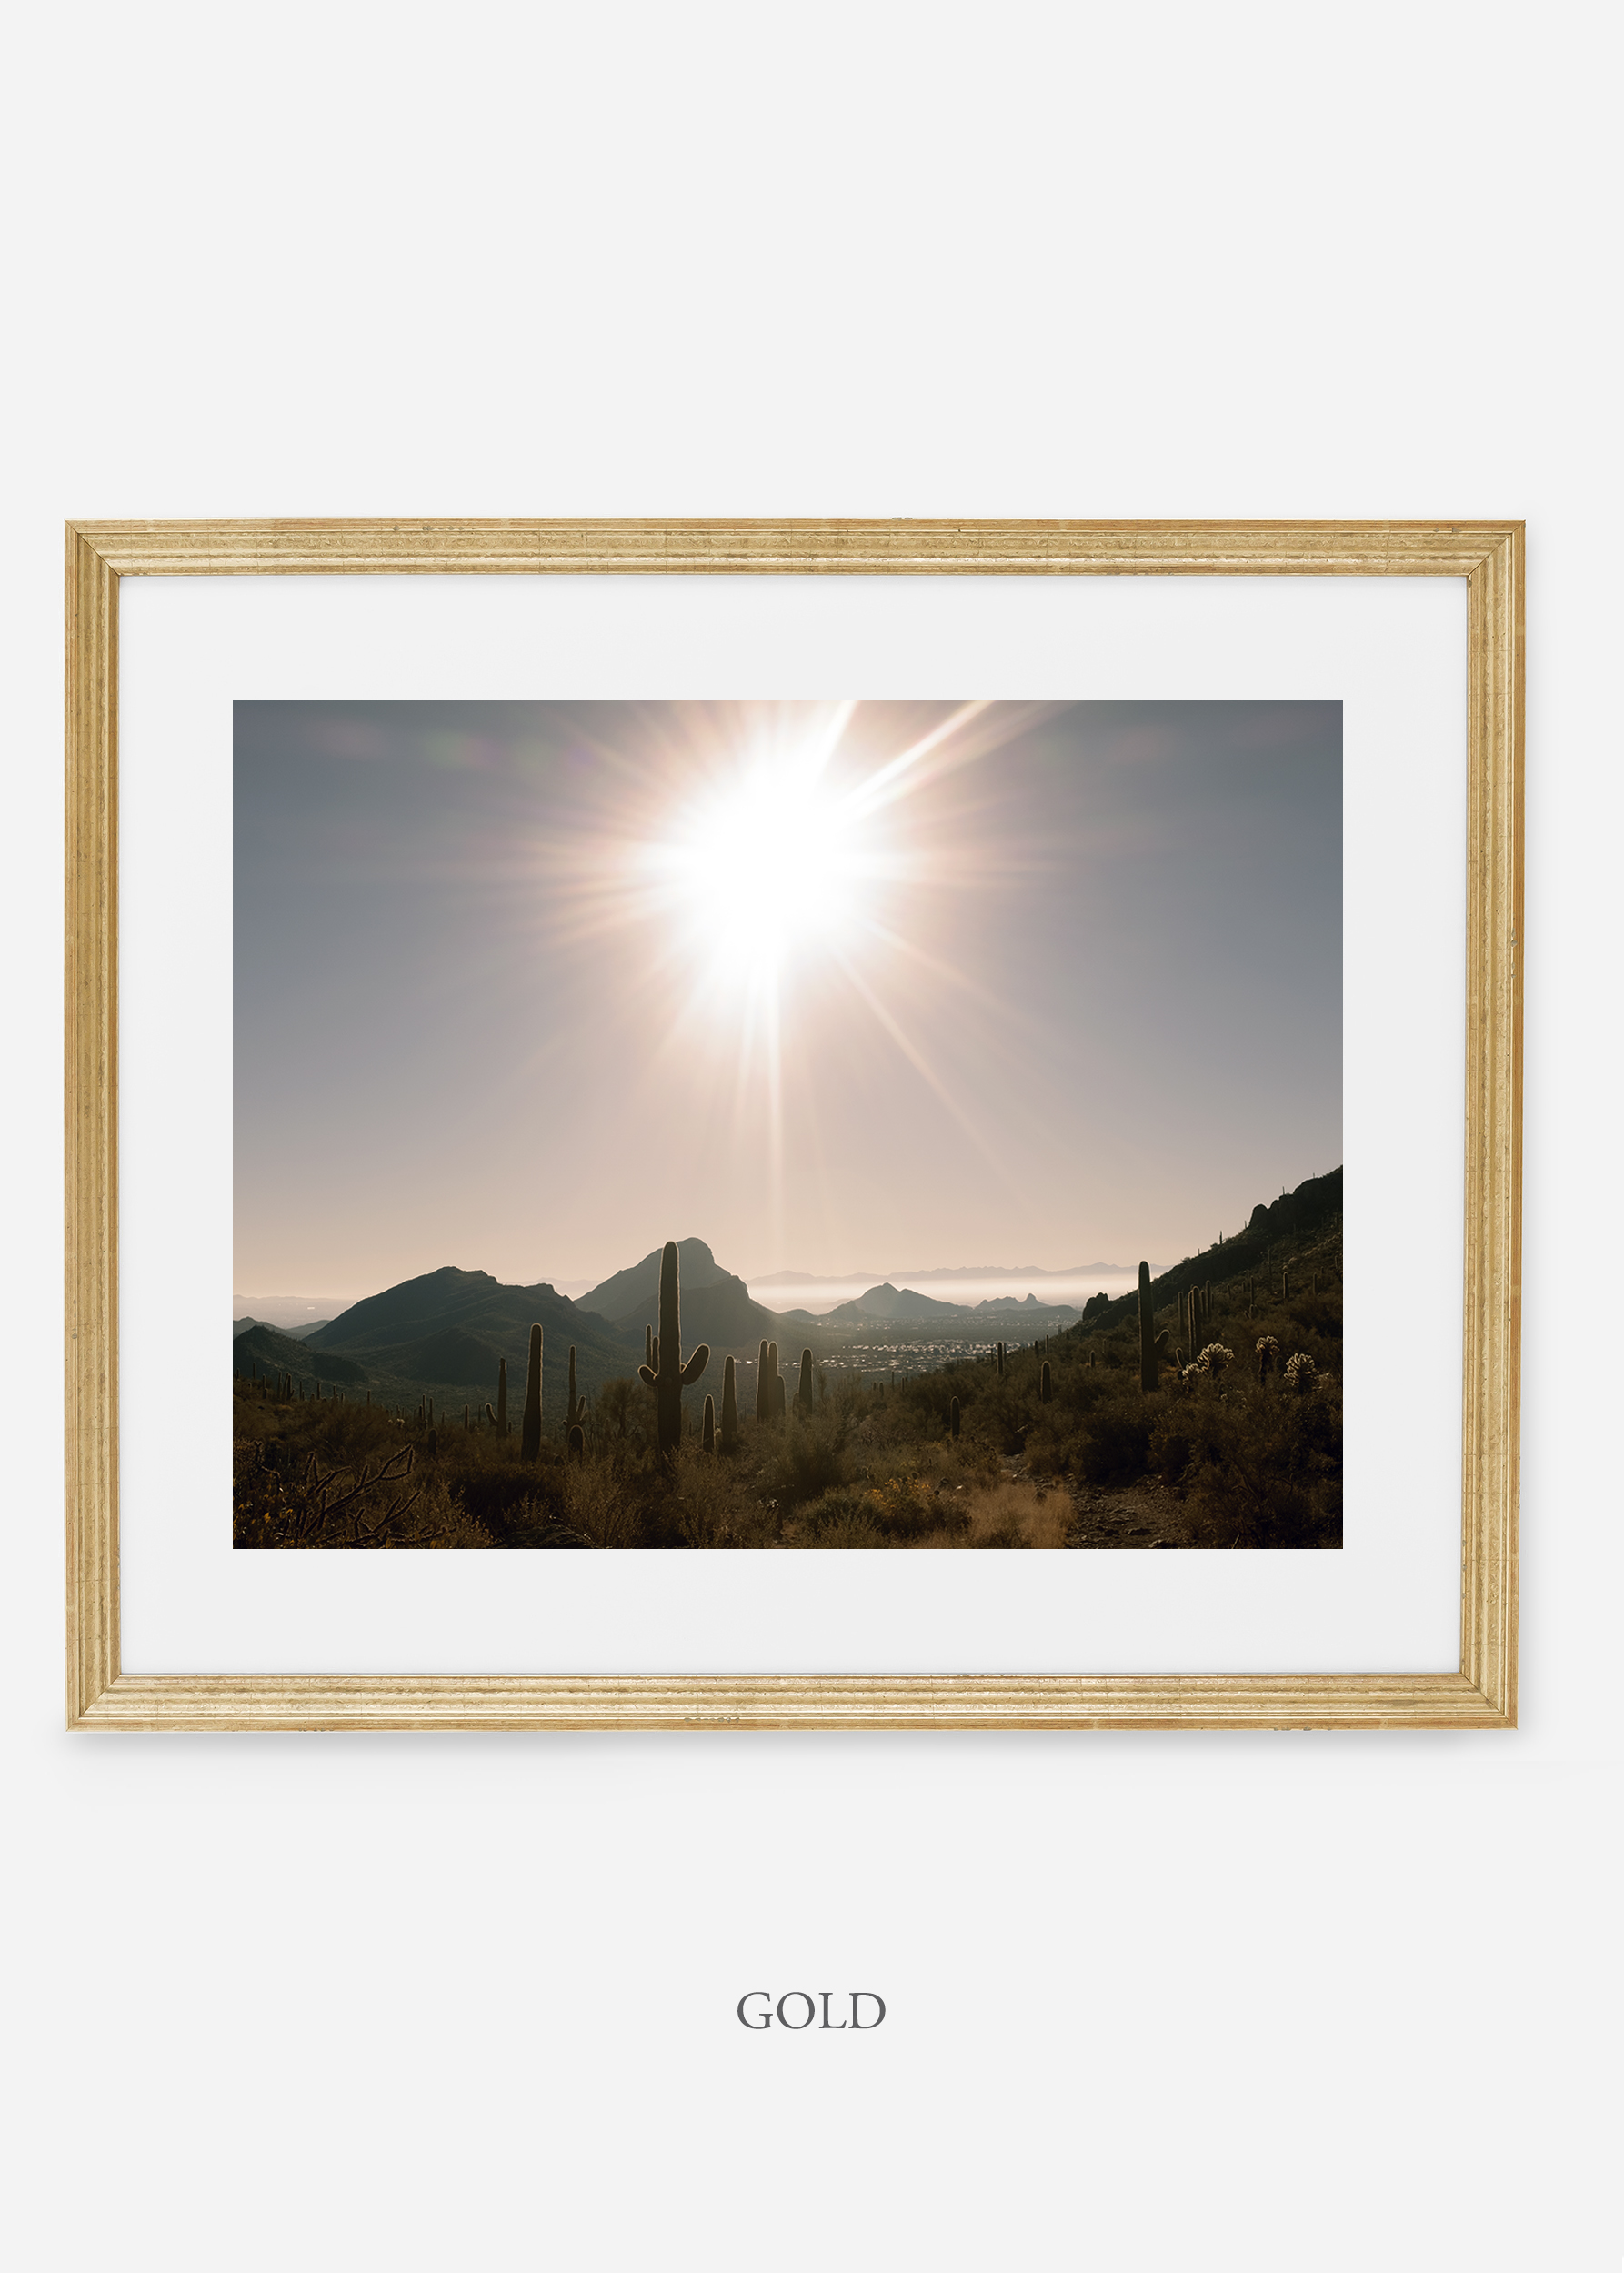 goldframe-saguaroNo.15-wildercalifornia-art-wallart-cactusprint-homedecor-prints-arizona-botanical-artwork-interiordesign.jpg